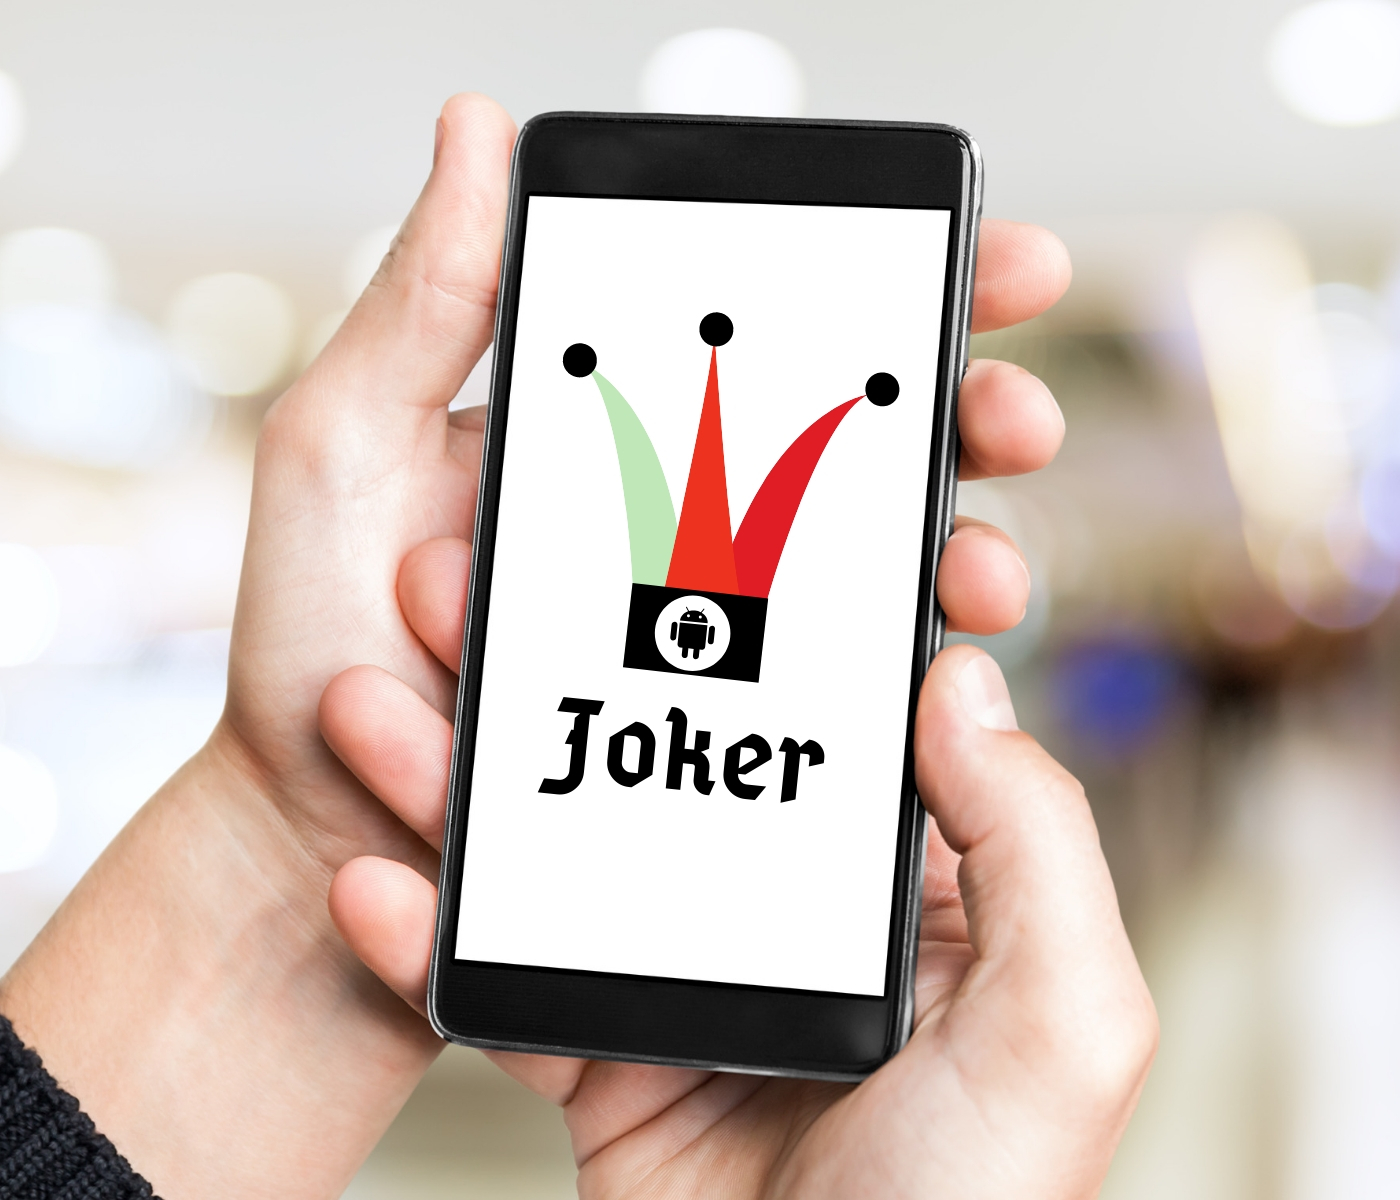 Port Maine Bettwäsche Android: Joker Malware In 24 Applications On Play Store - Revick